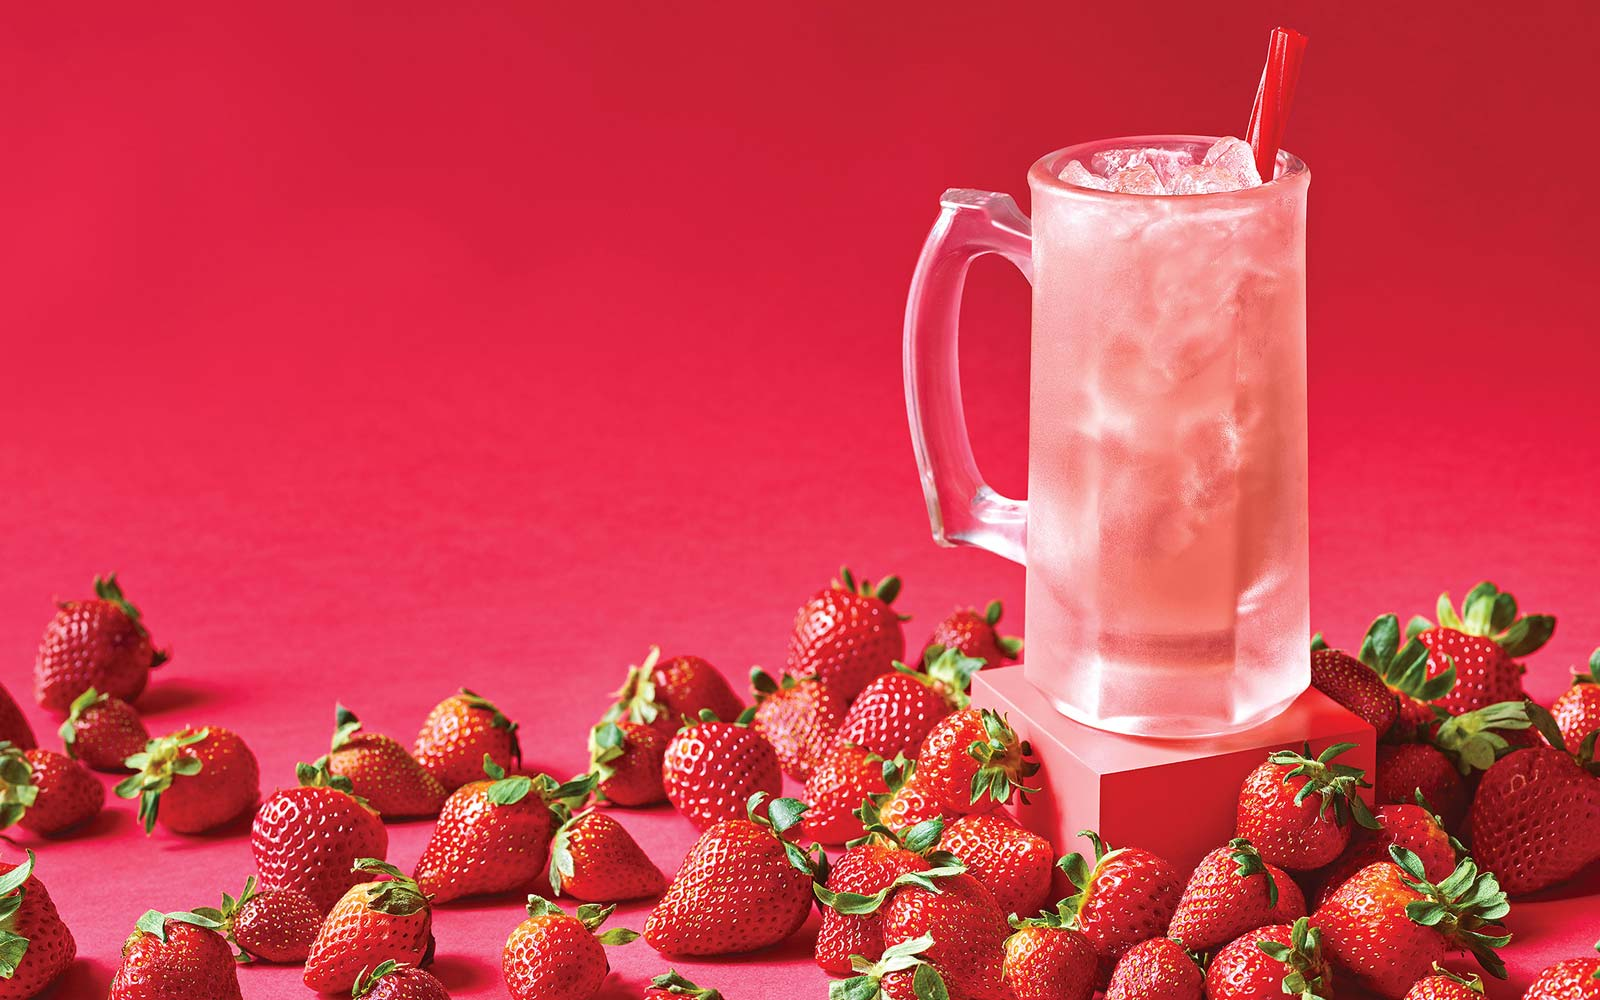 Applebee's Is Selling Strawberry Margaritas for $1 This Month